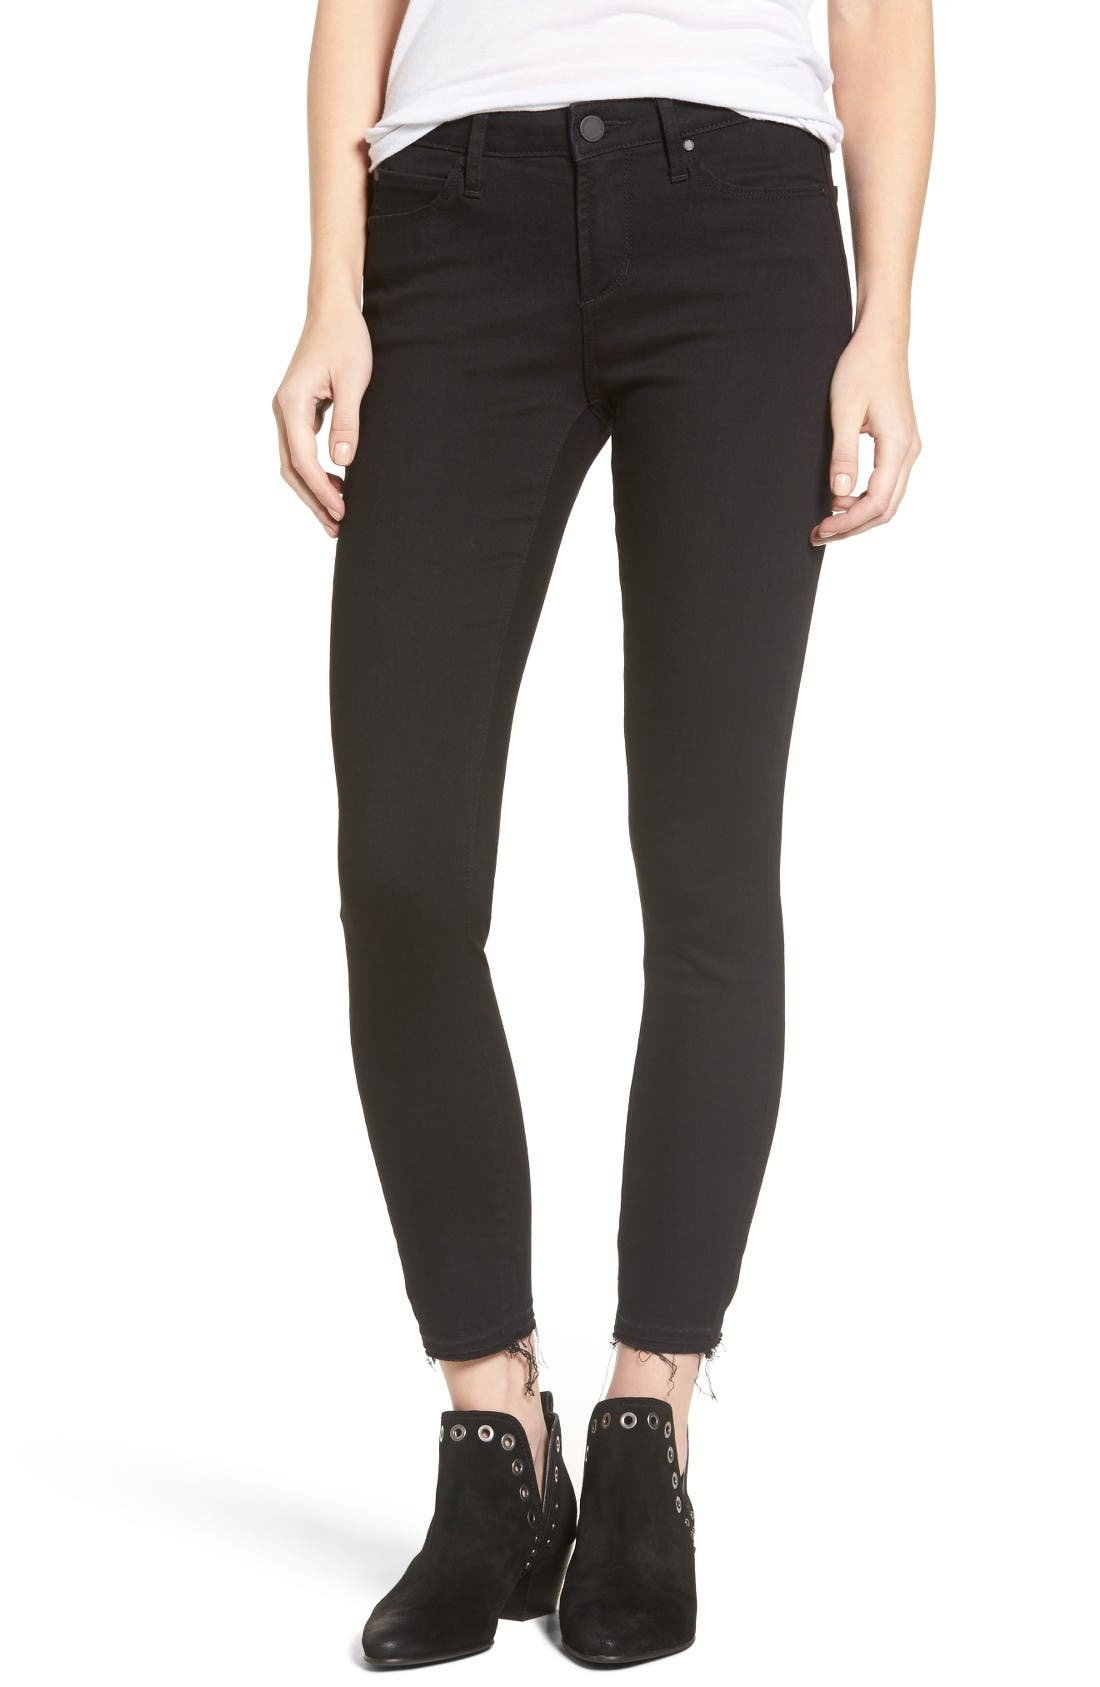 Main Image - Articles of Society Carly Crop Skinny Jeans (Dunlop)